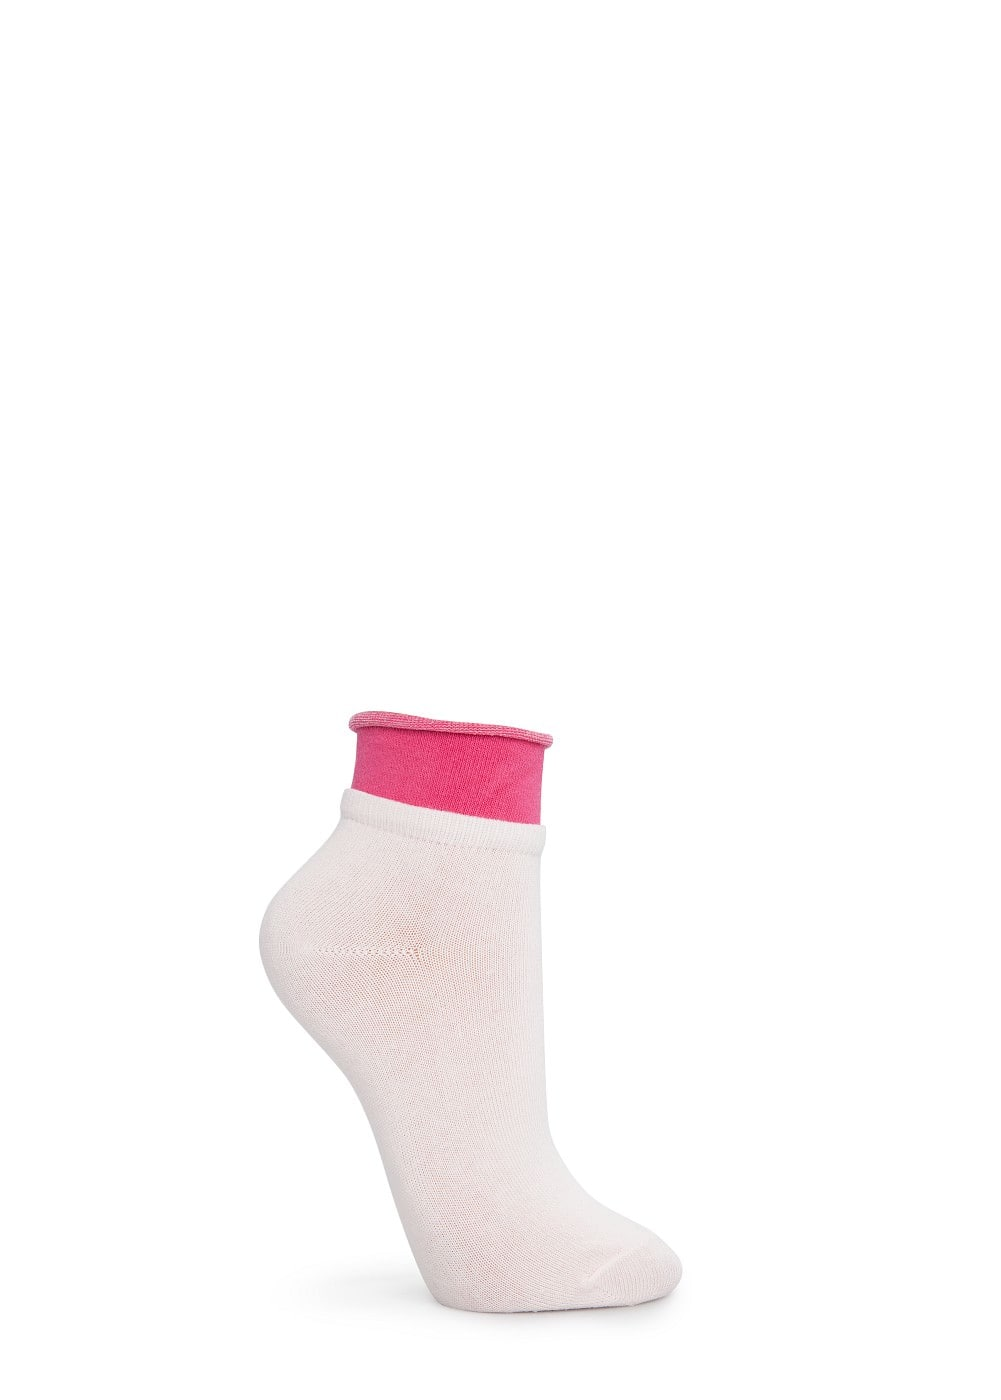 Double-layer ankle socks